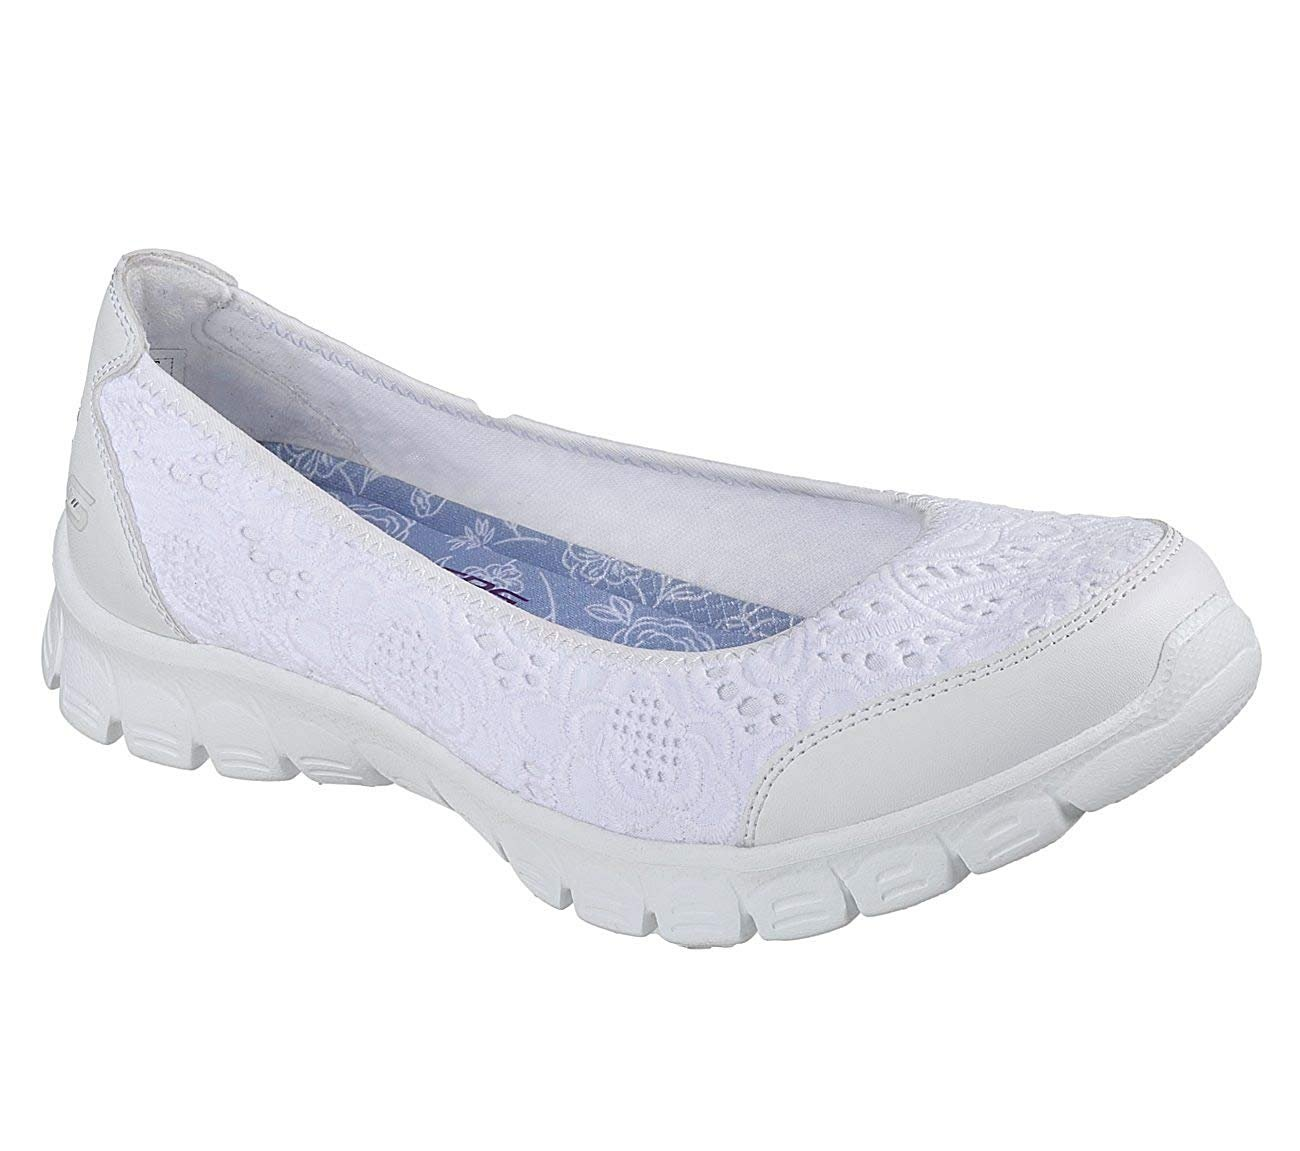 Skechers EZ Flex 3.0 Be You Womens Slip On Skimmer Sneakers White 9